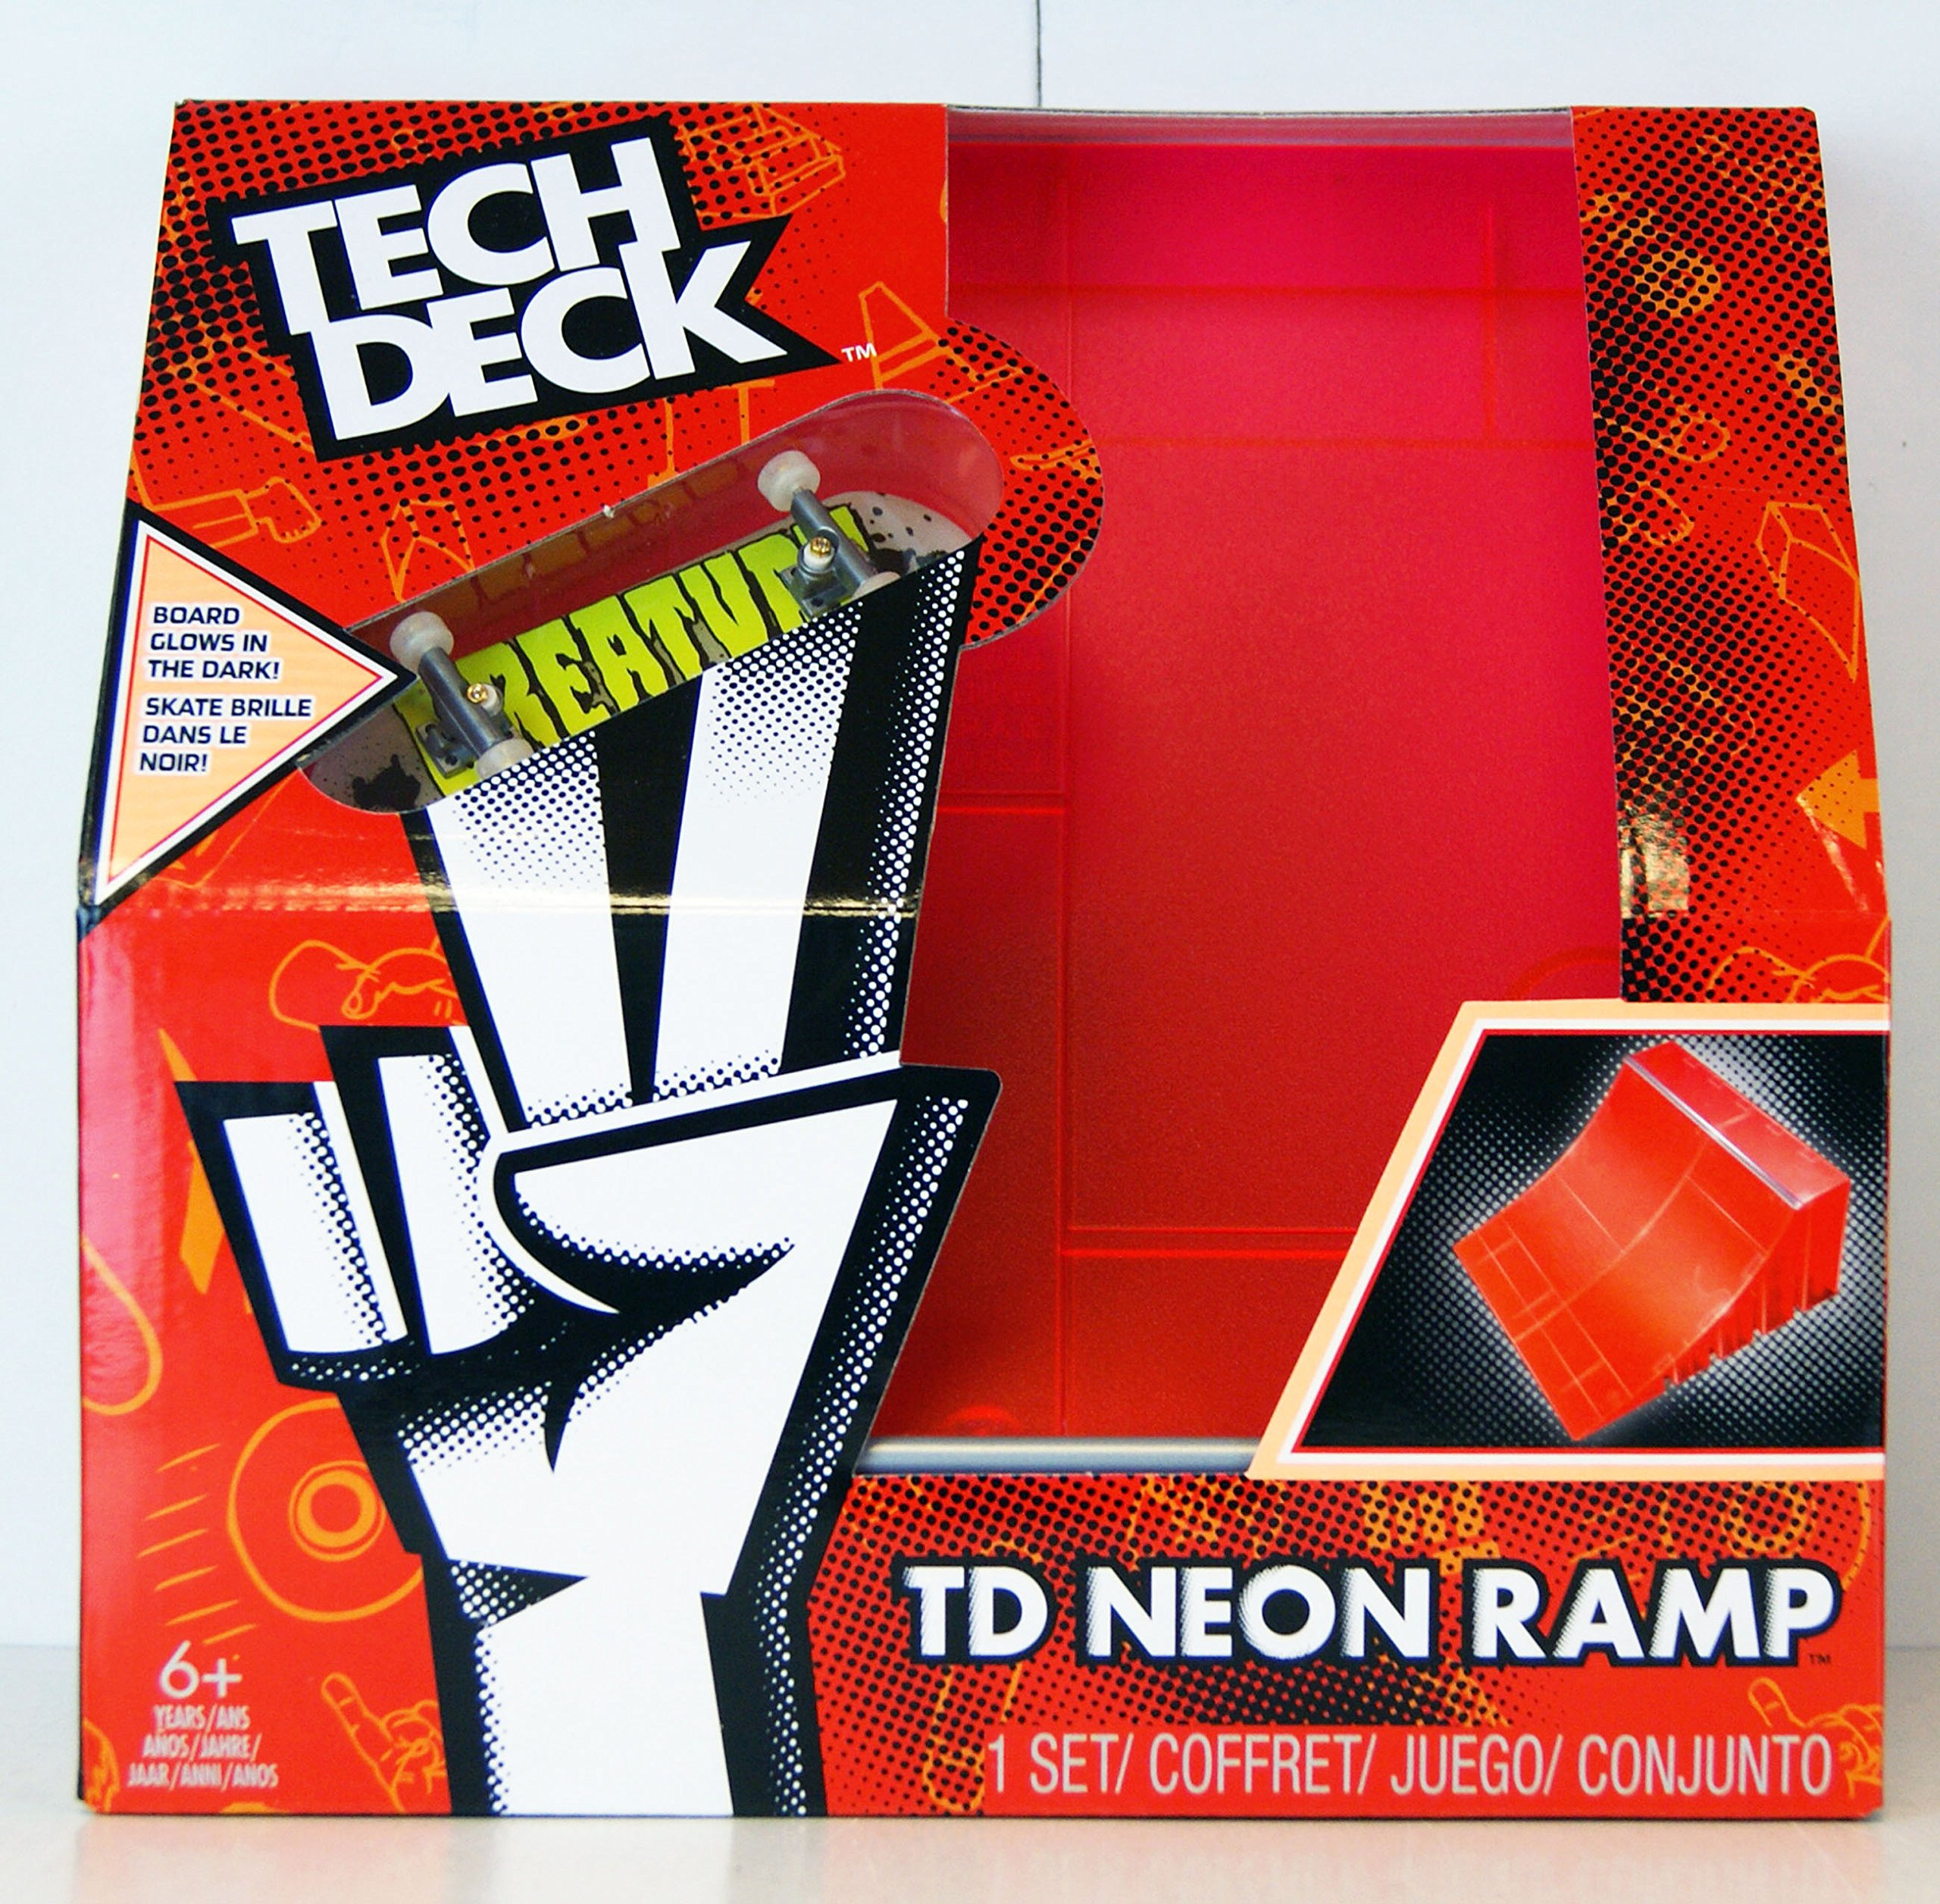 Spinmaster Tech Deck Neon Ramp, Red Quarter Pipe by Spin Master